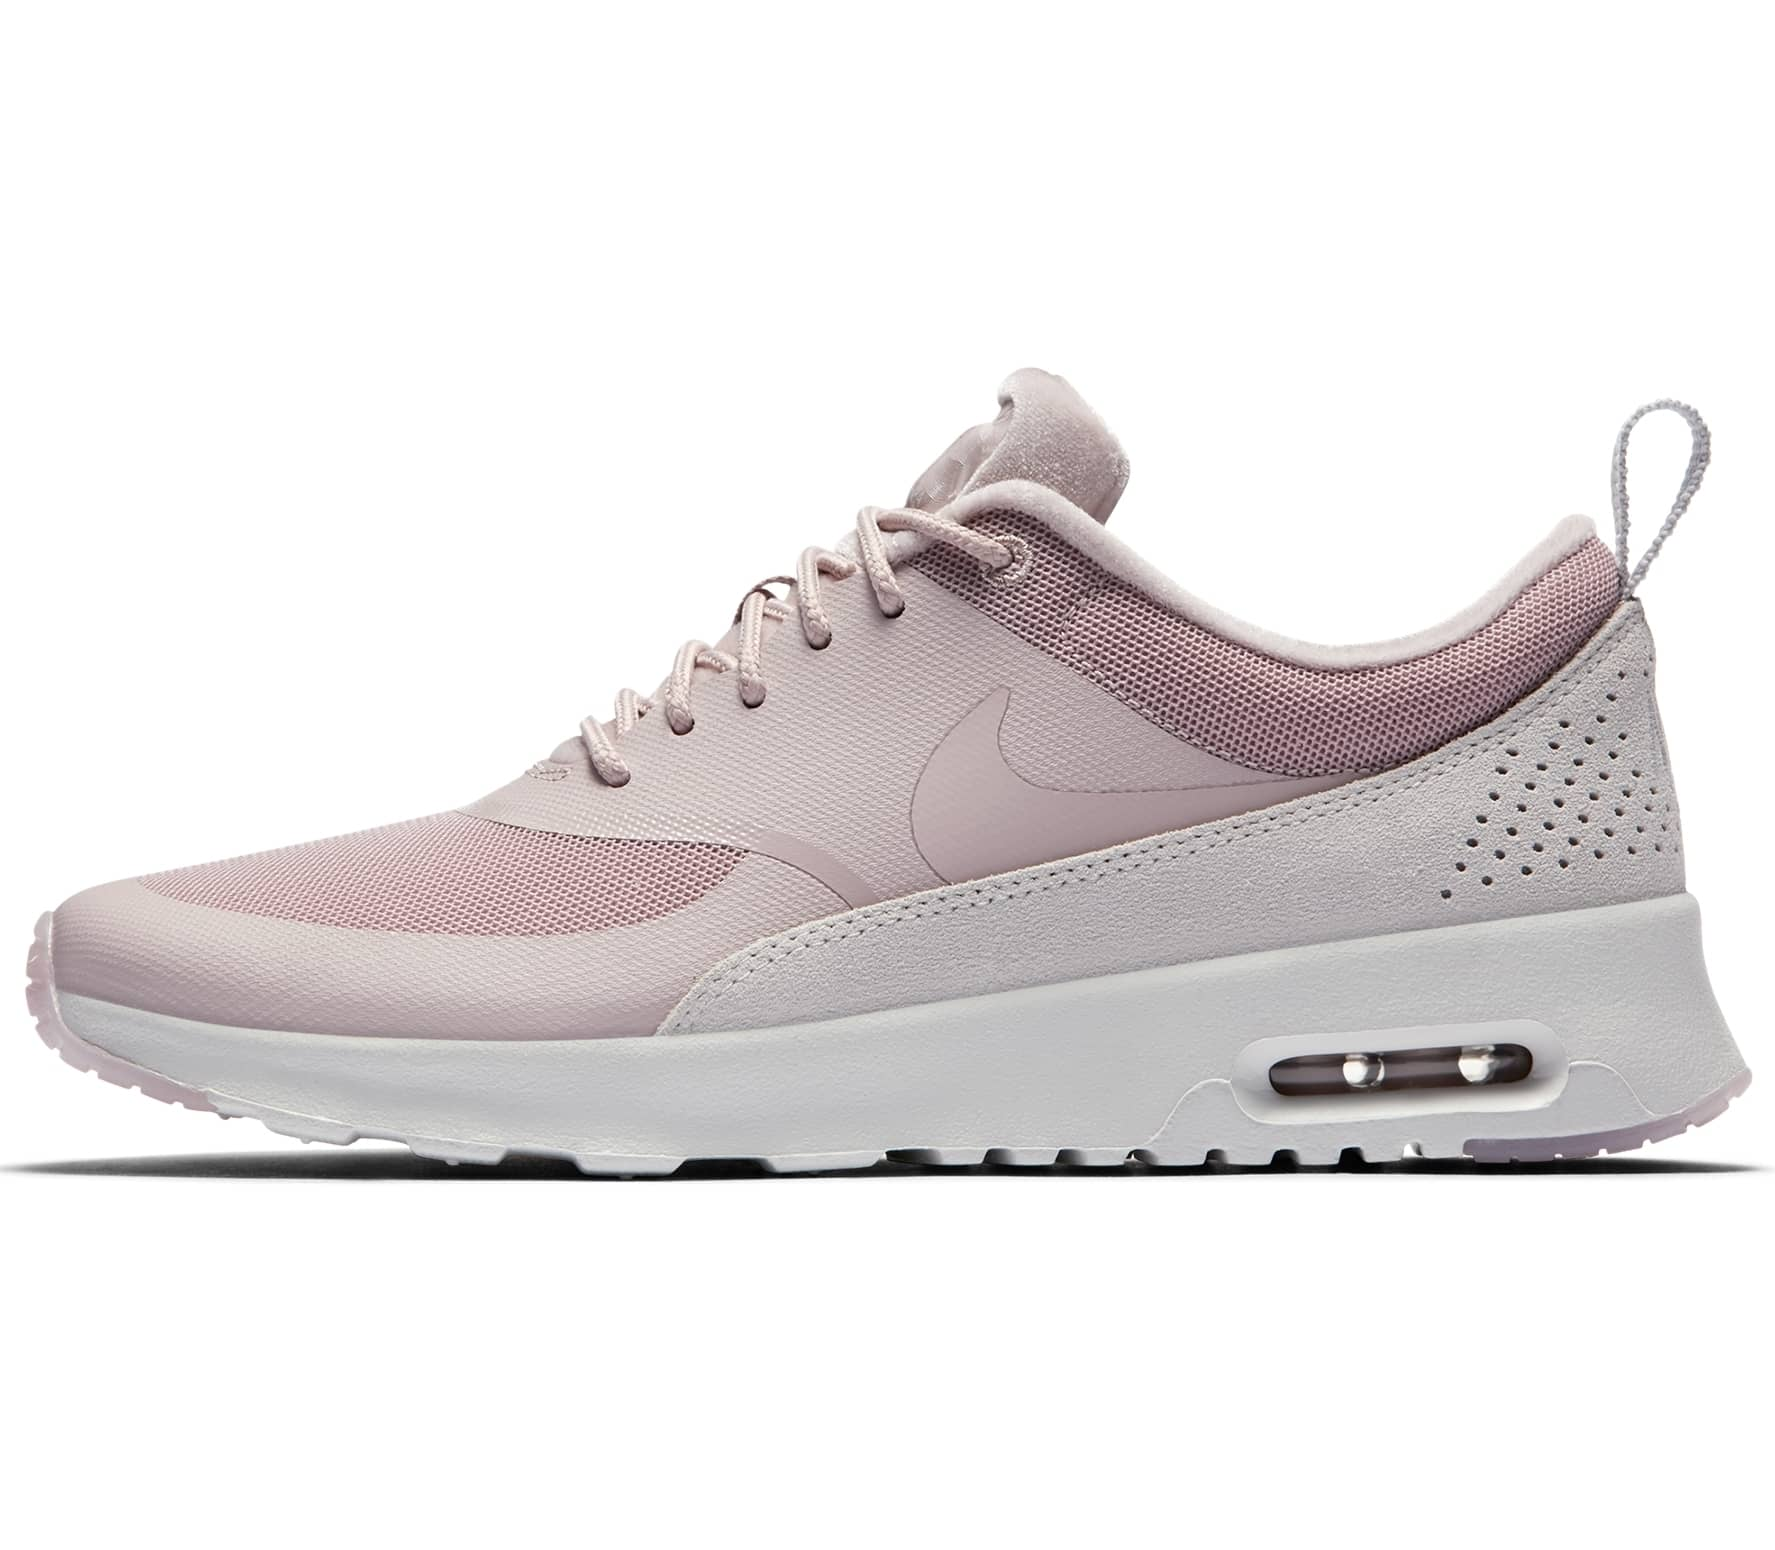 nike air max thea lx damen sneaker pink im online shop. Black Bedroom Furniture Sets. Home Design Ideas